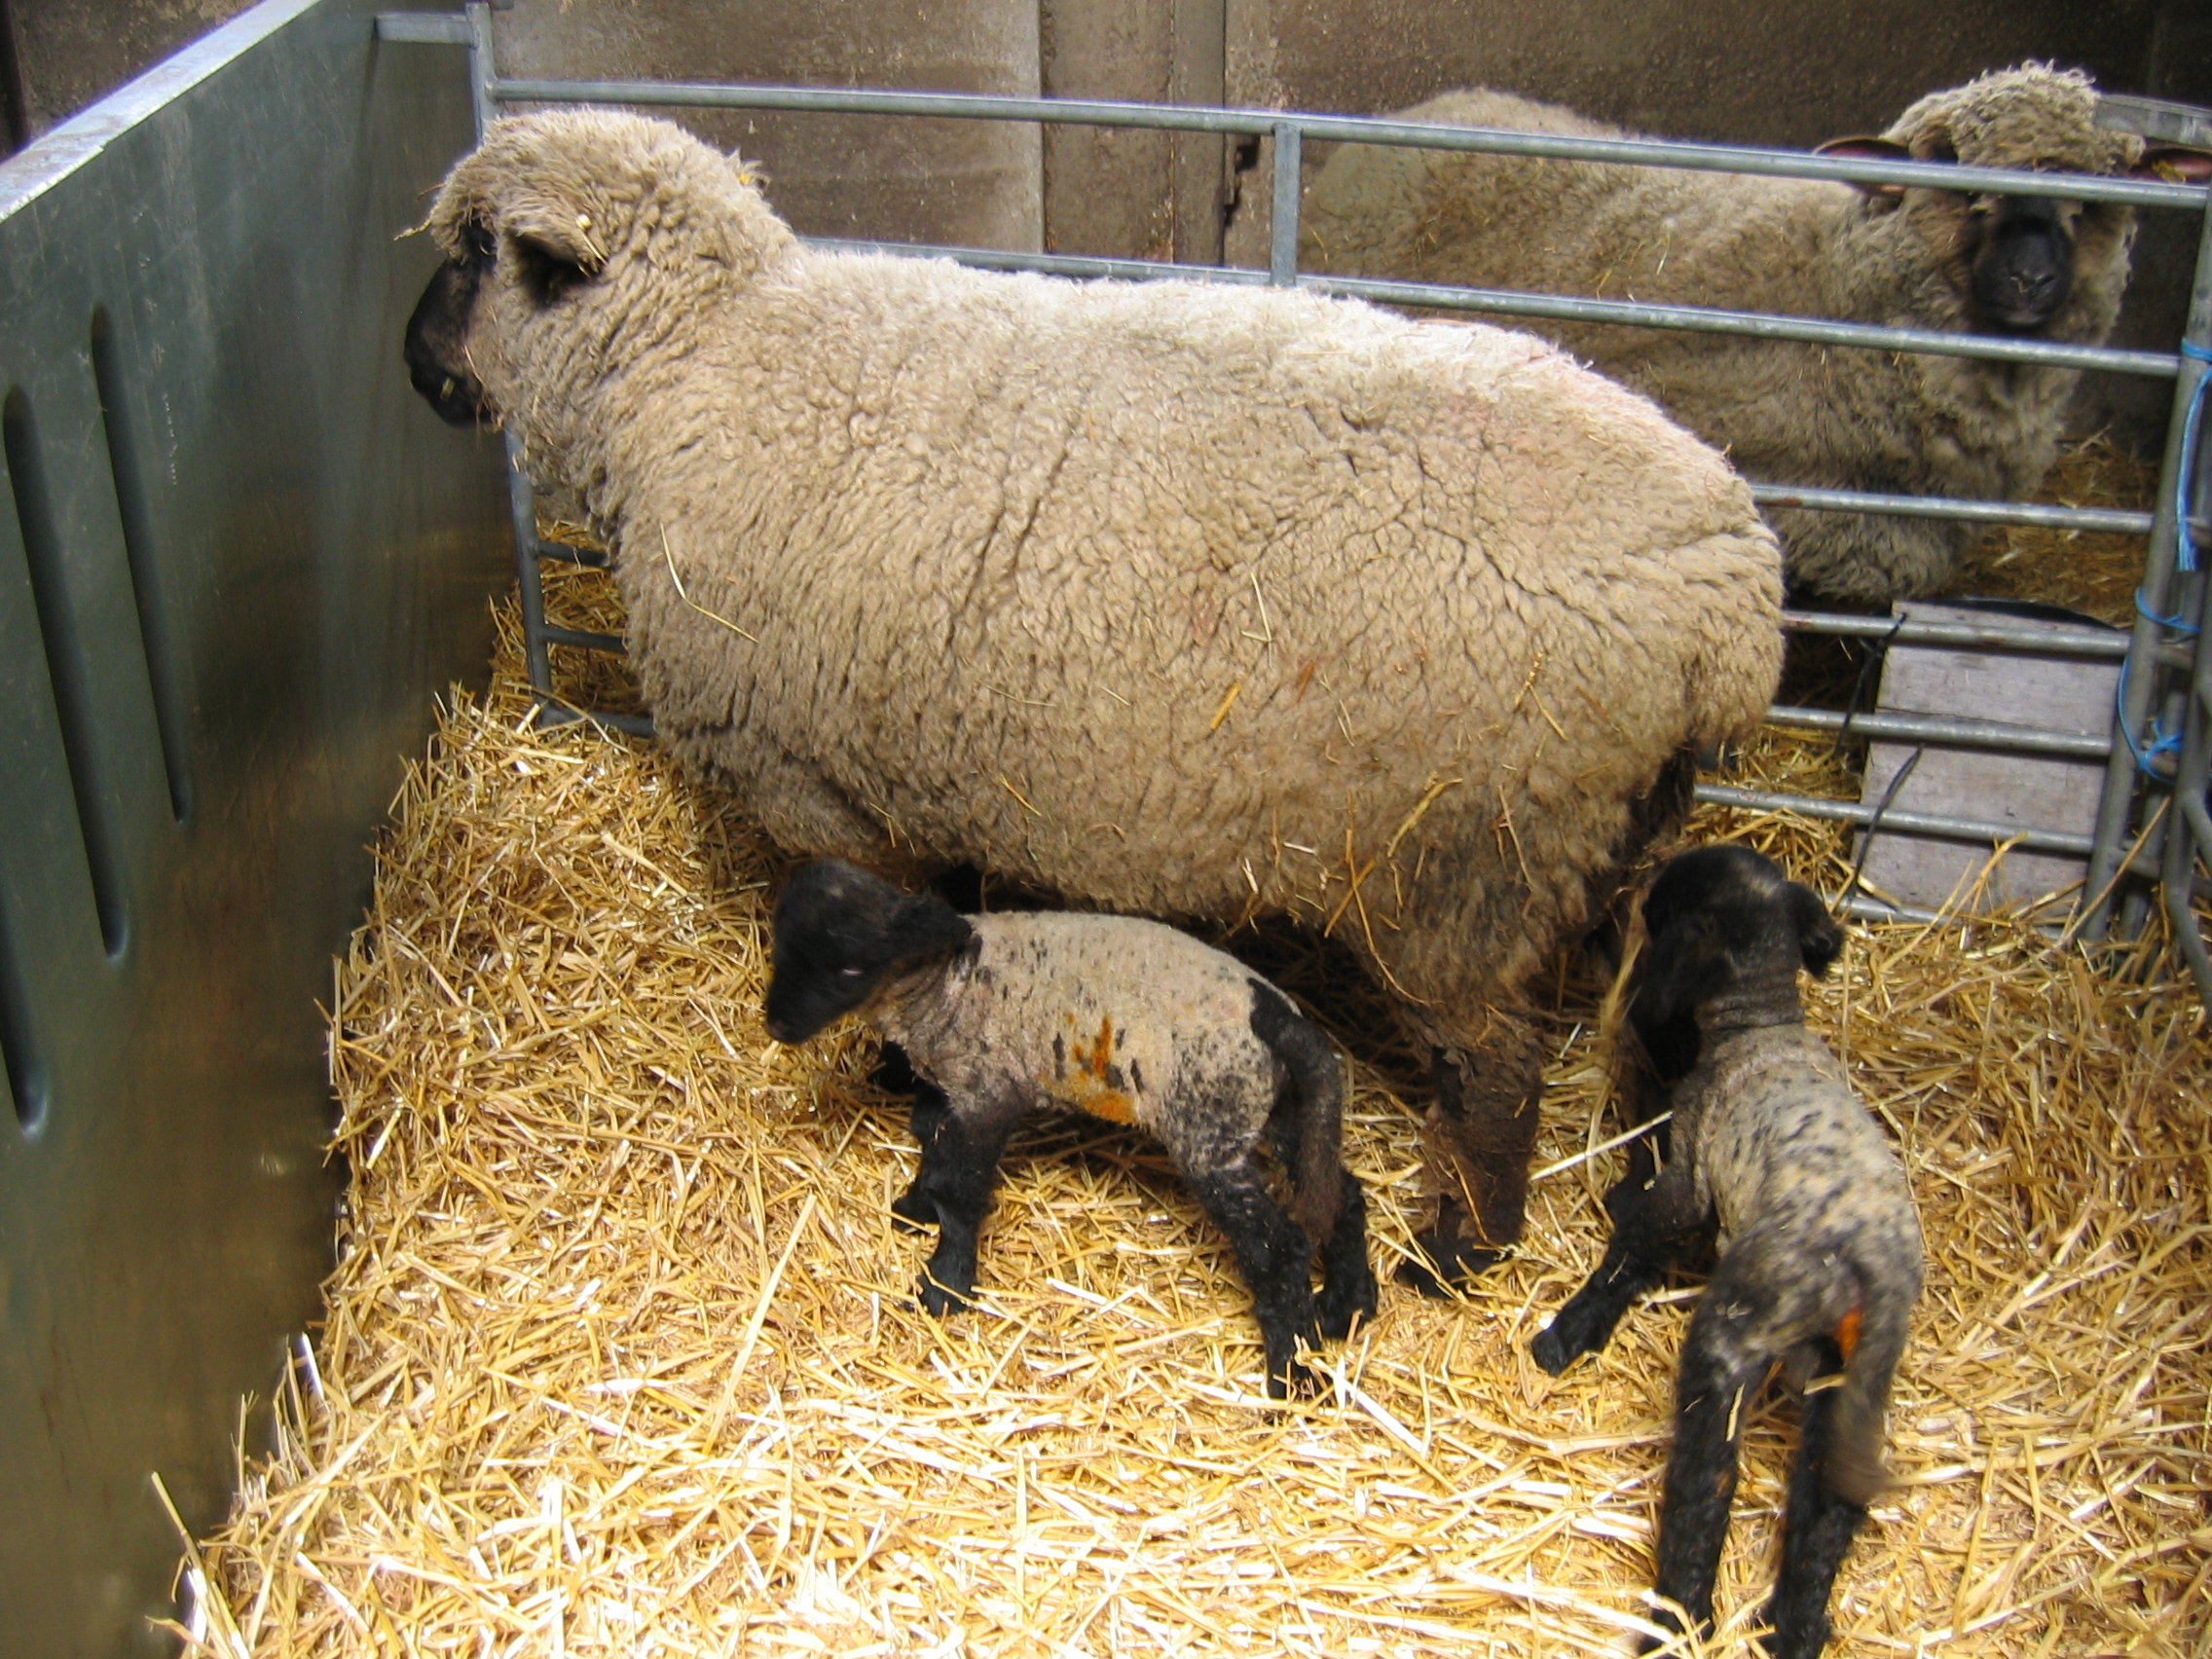 sheep farming Gerard dawn's sheep farming guide gerard dawn's sheep farming ebook is an amazing guide that goes into detail on starting a sheep farm gerard dawn's sheep farming ebook is now rated as one of the best sheep farming products on the market.